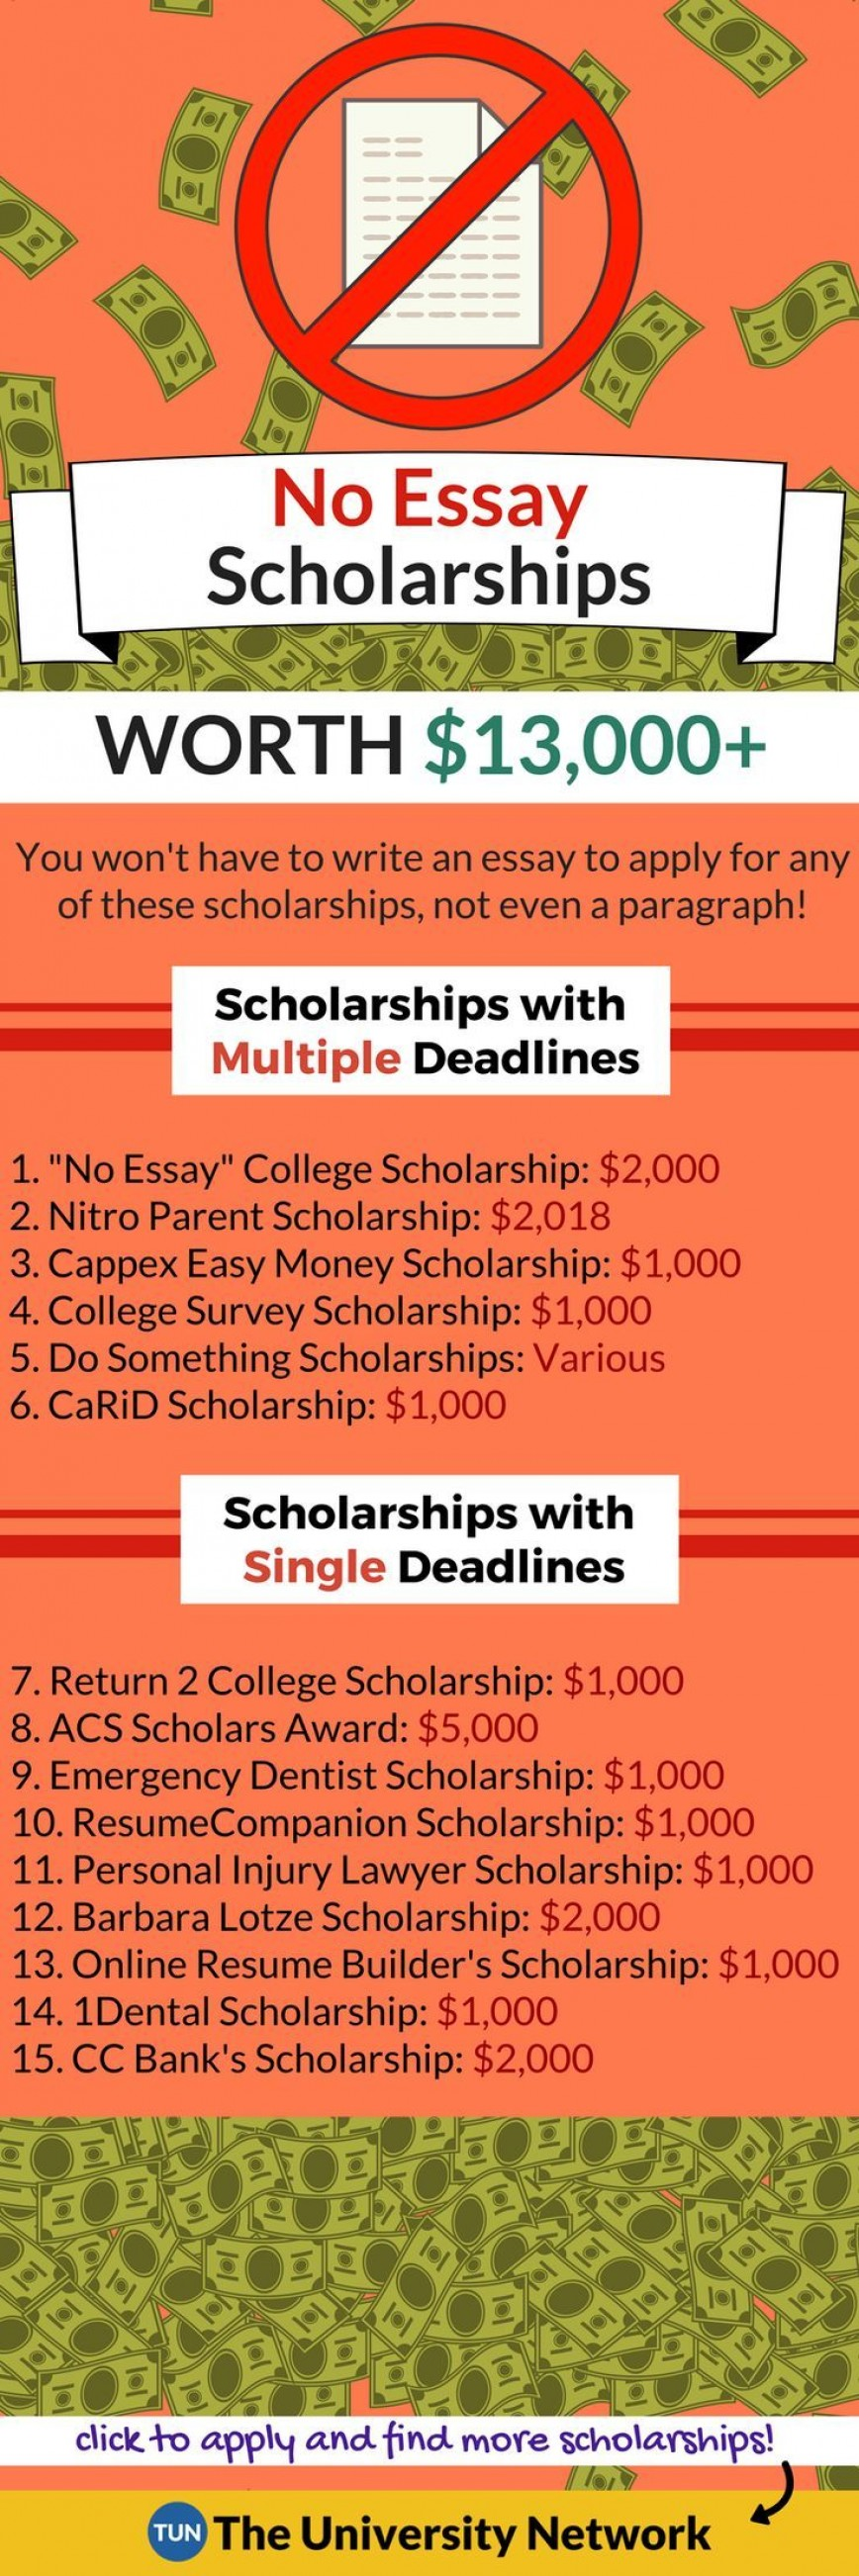 013 Essay Example No Exceptional Scholarships December 2018 For Undergraduates 868